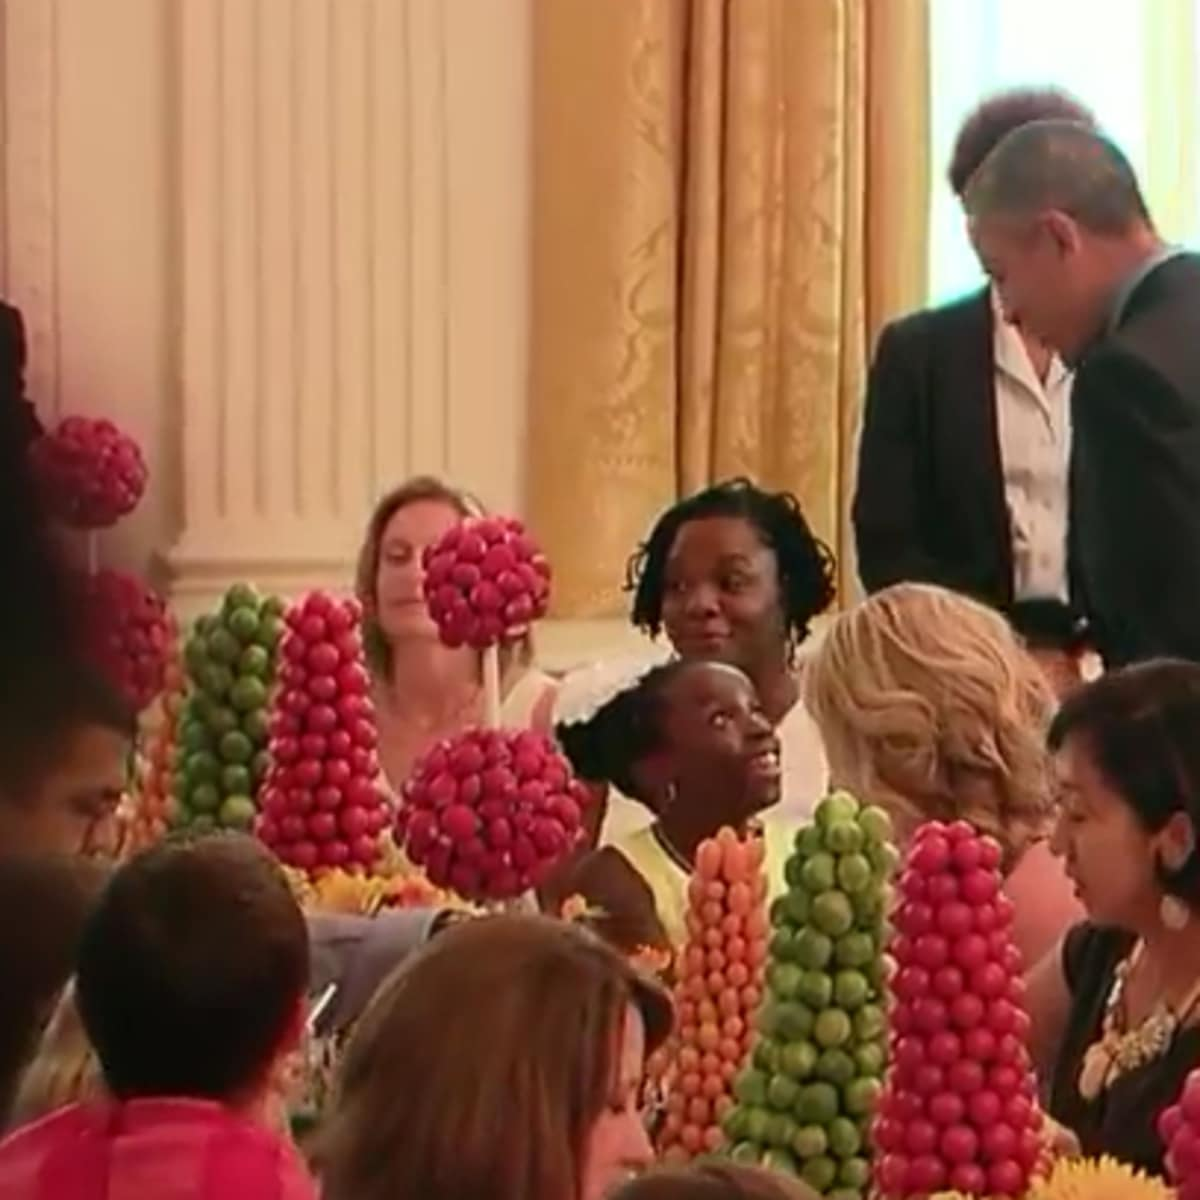 Mikaila Ulmer BeeSweet Lemonade Austin White House Kids State Dinner President Barack Obama July 2015